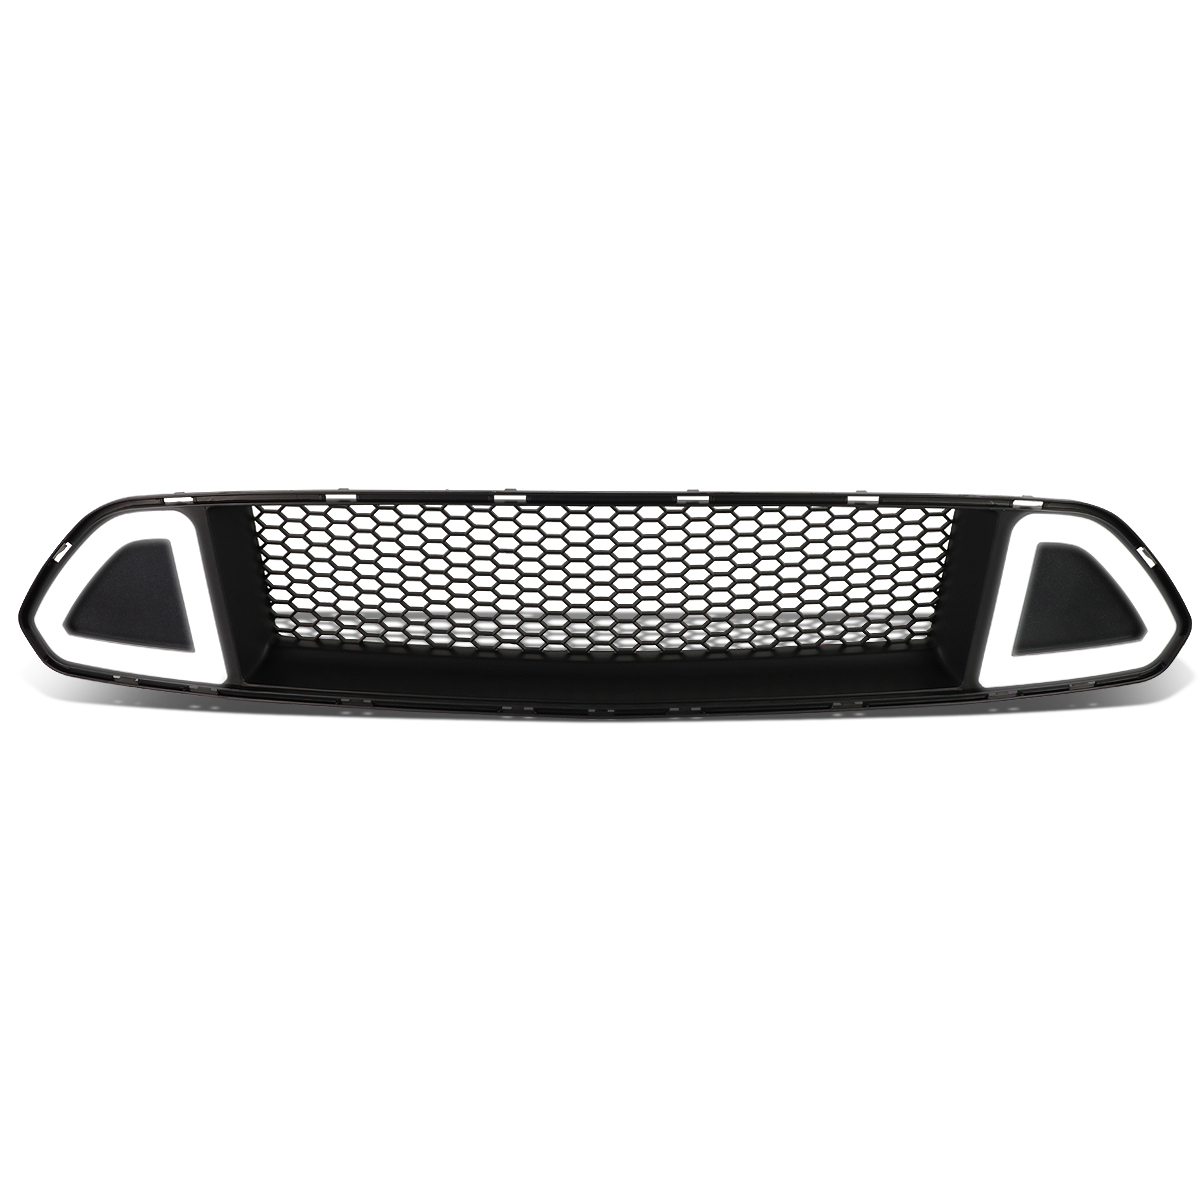 15 17 Ford Mustang Honeycomb Mesh Front Upper Grille